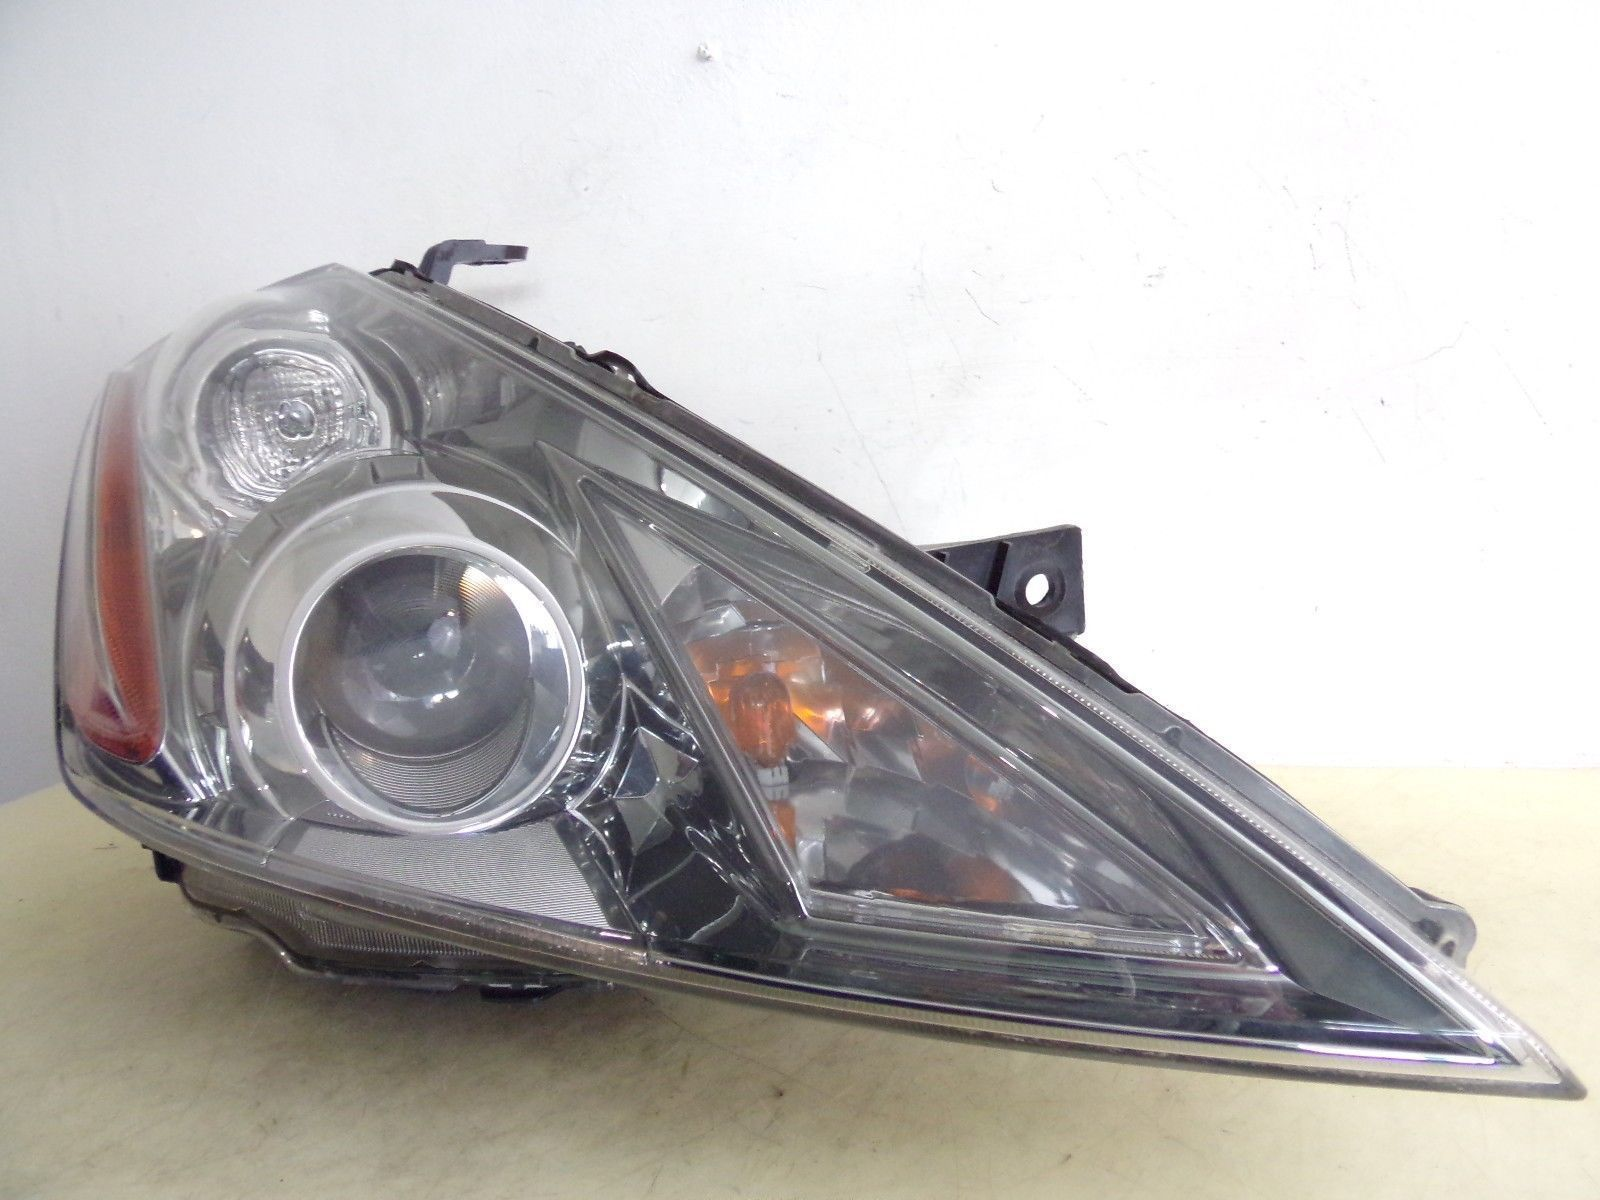 Primary image for 2006 2007 NISSAN MURANO RH PASSENGER XENON HID HEADLIGHT OEM 44